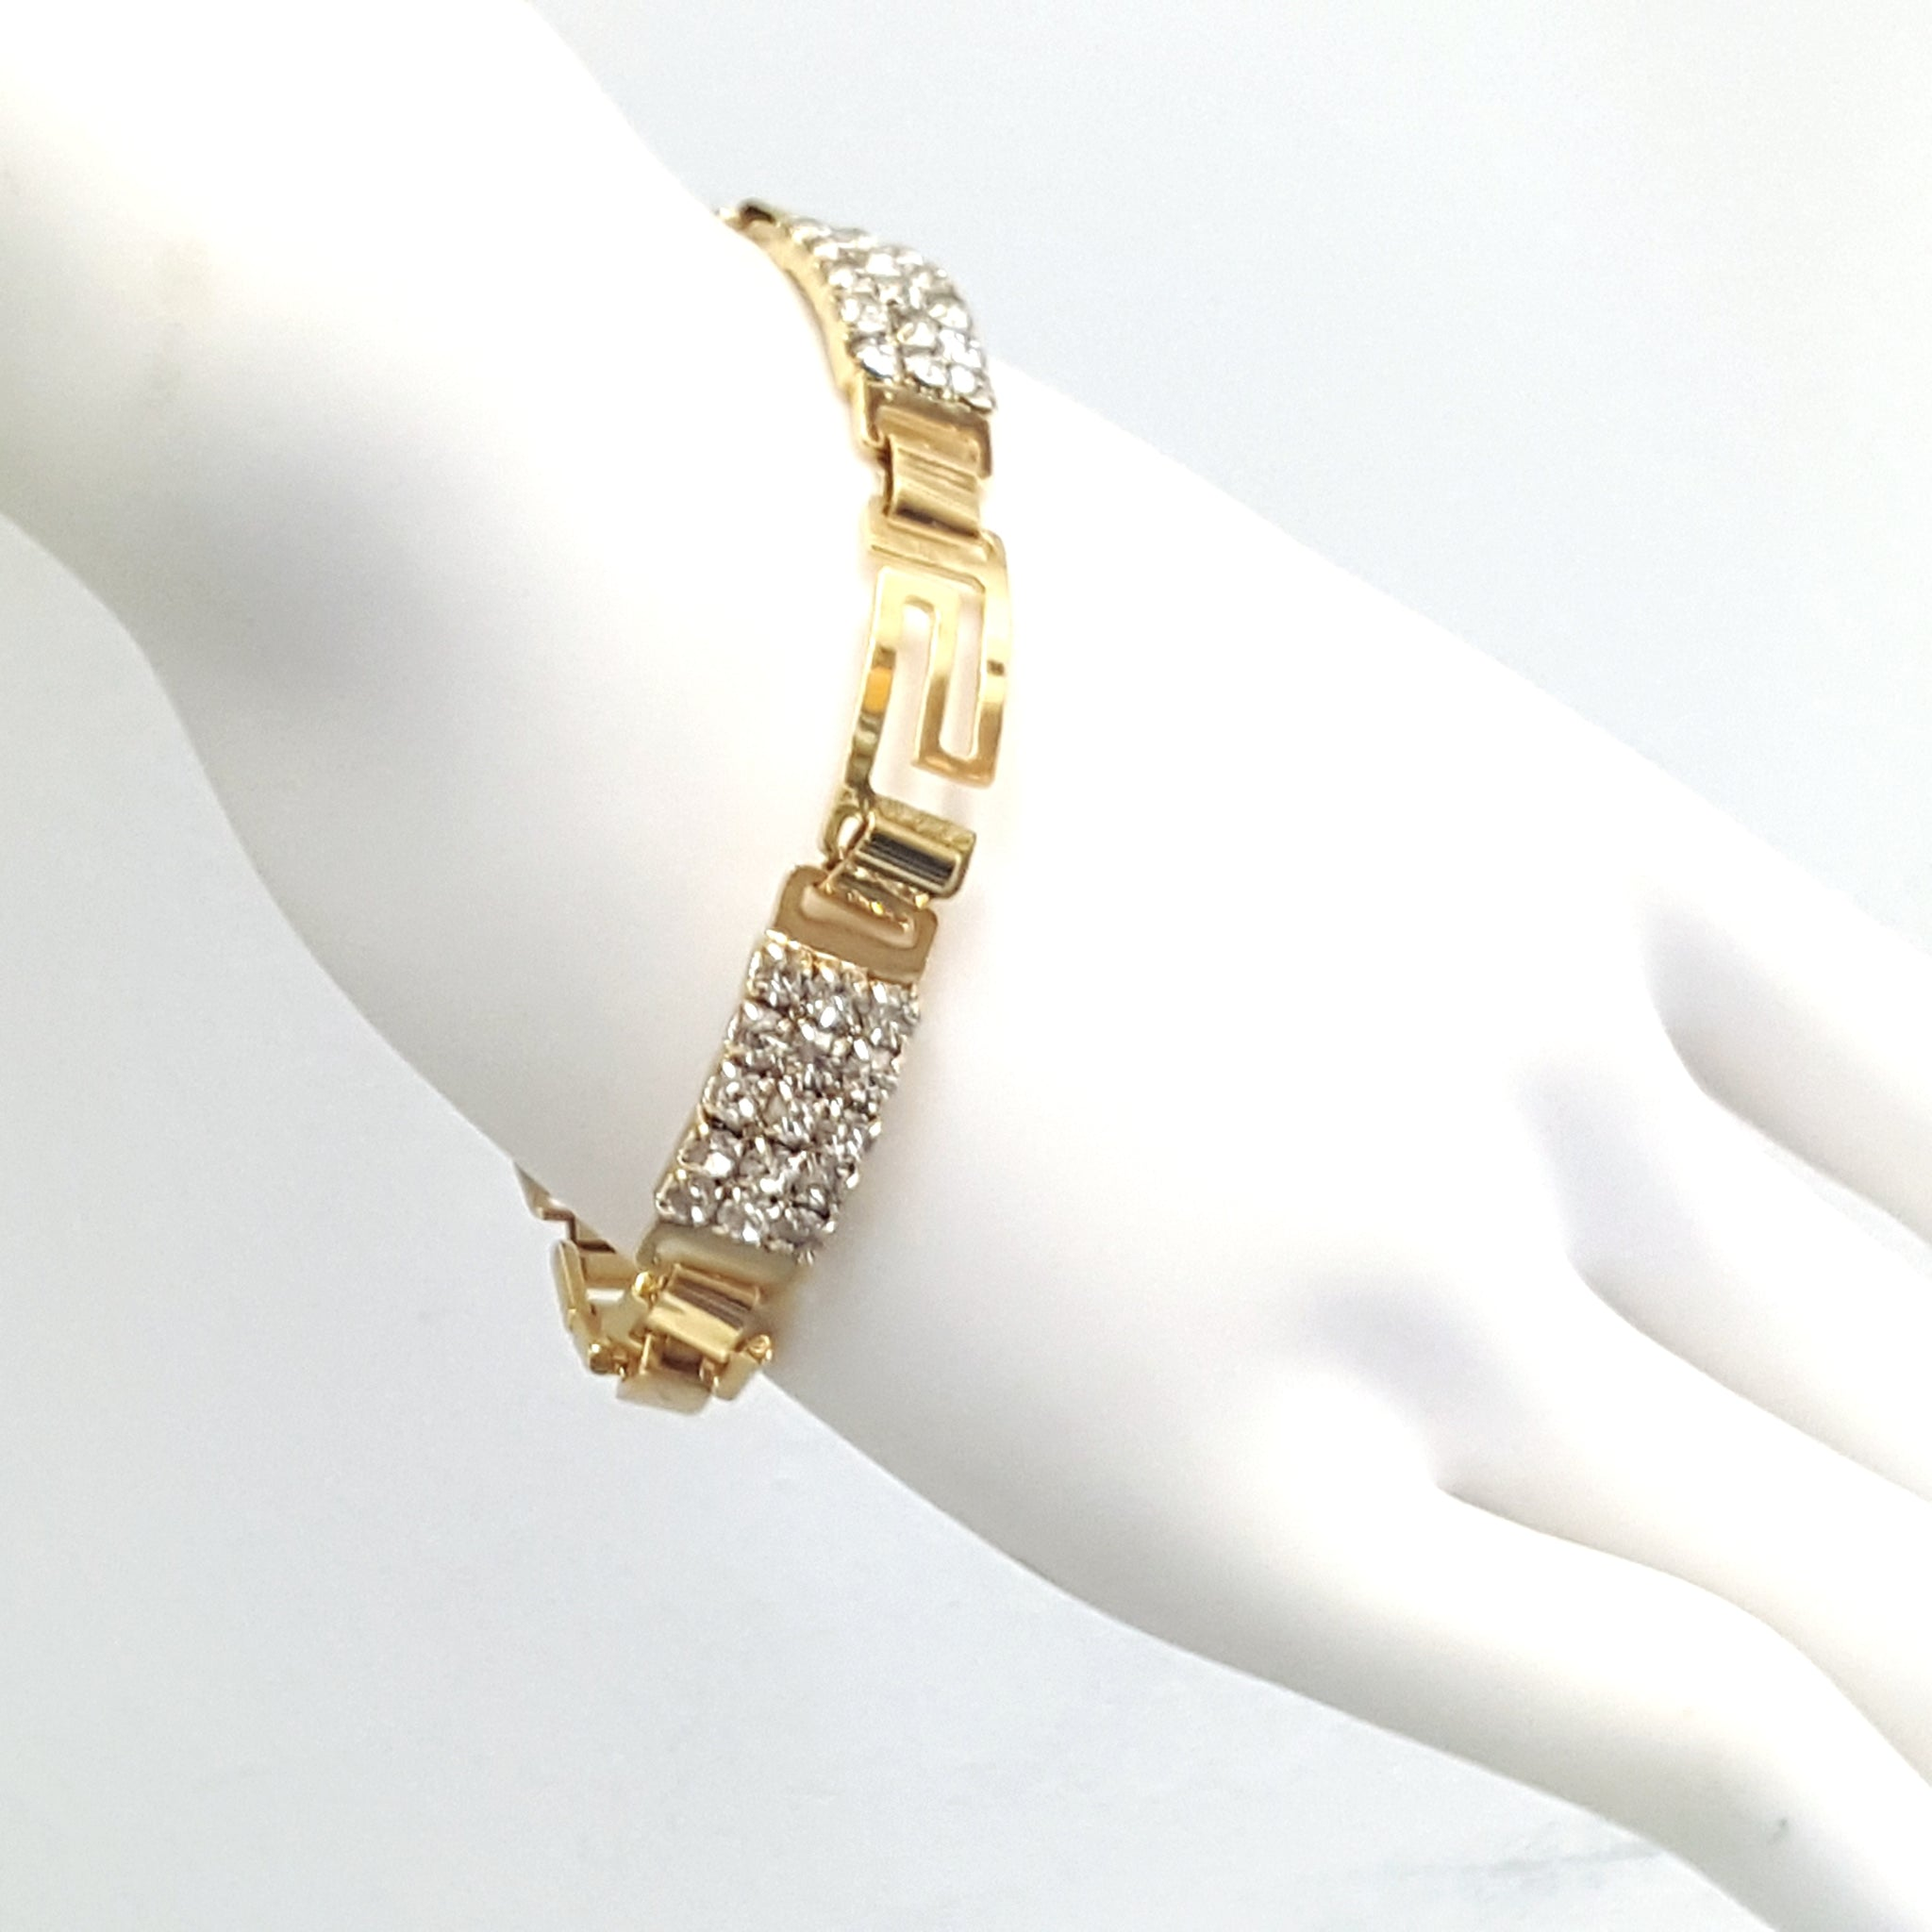 gold heavenbracelet fix bracelet products braclet house monk design poms heaven